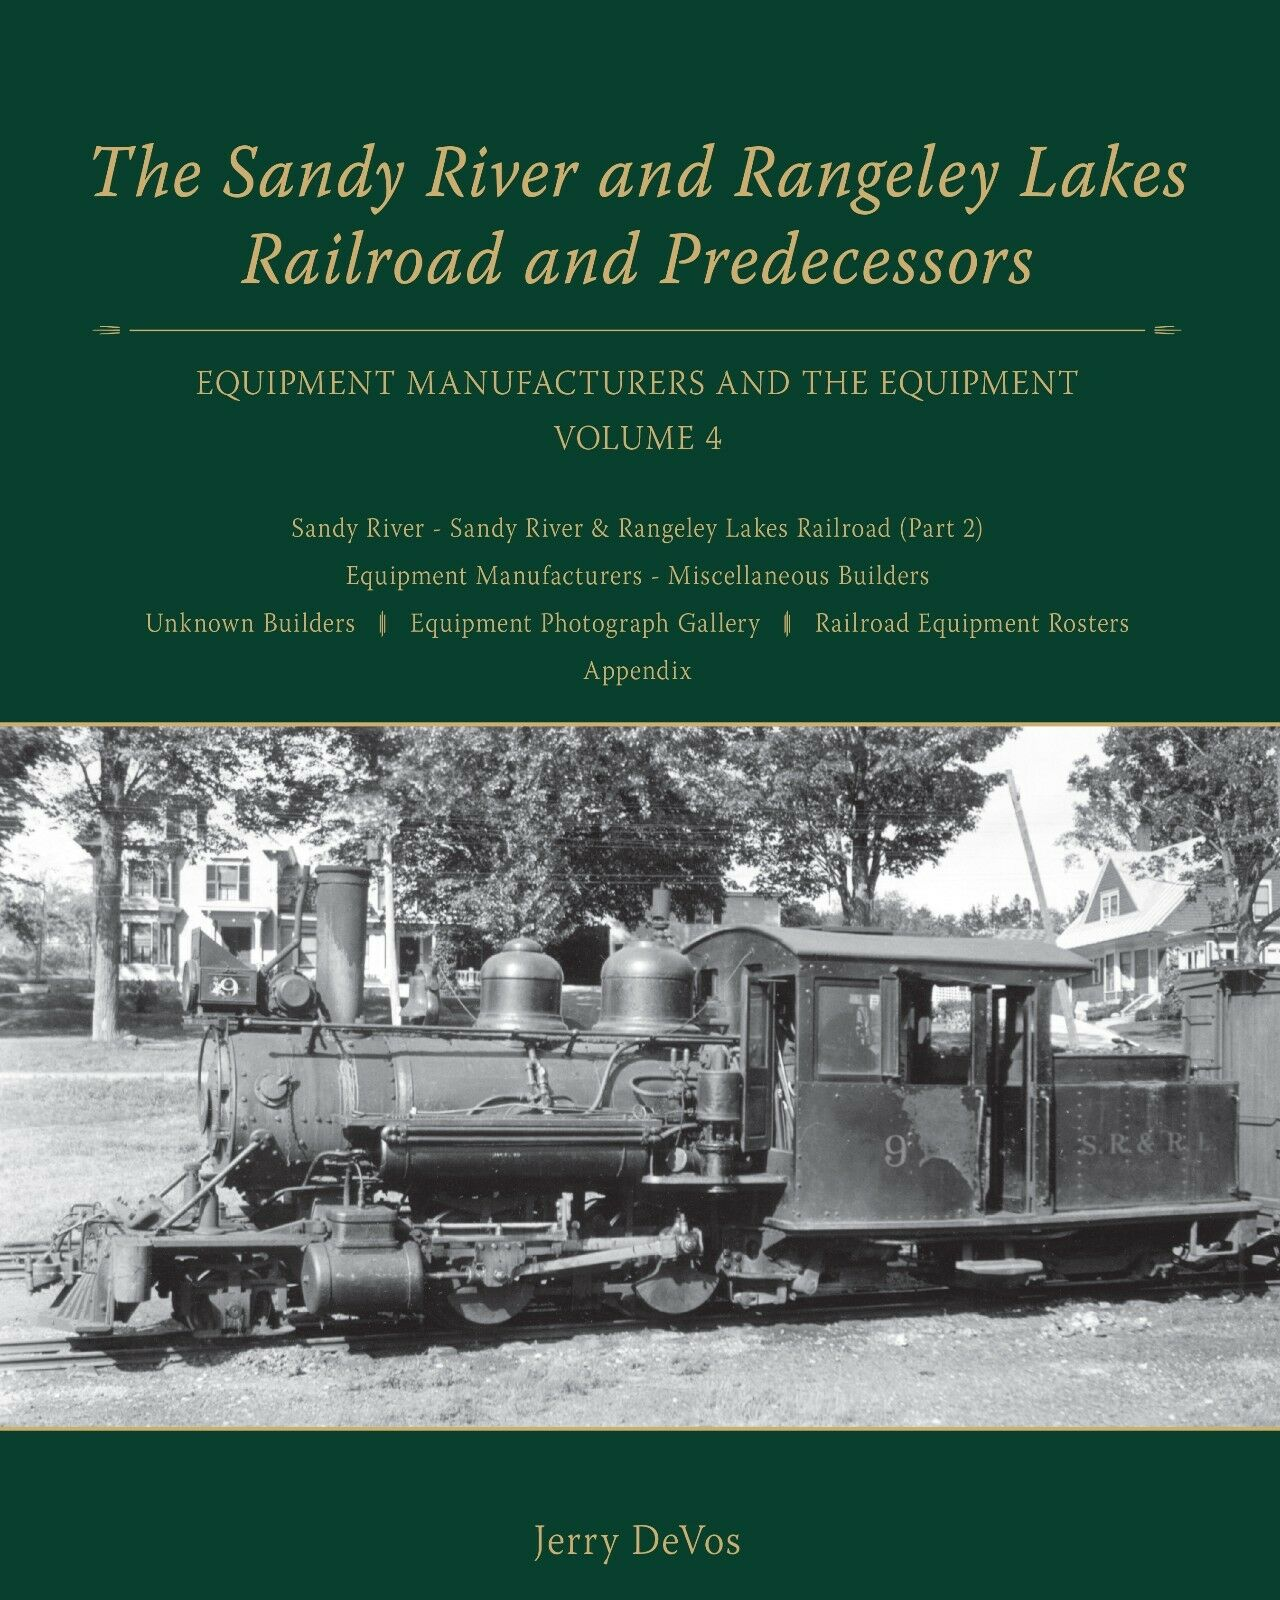 Sandy River and Rangeley Lakes Railroad and Prossoecessors, Volume 4